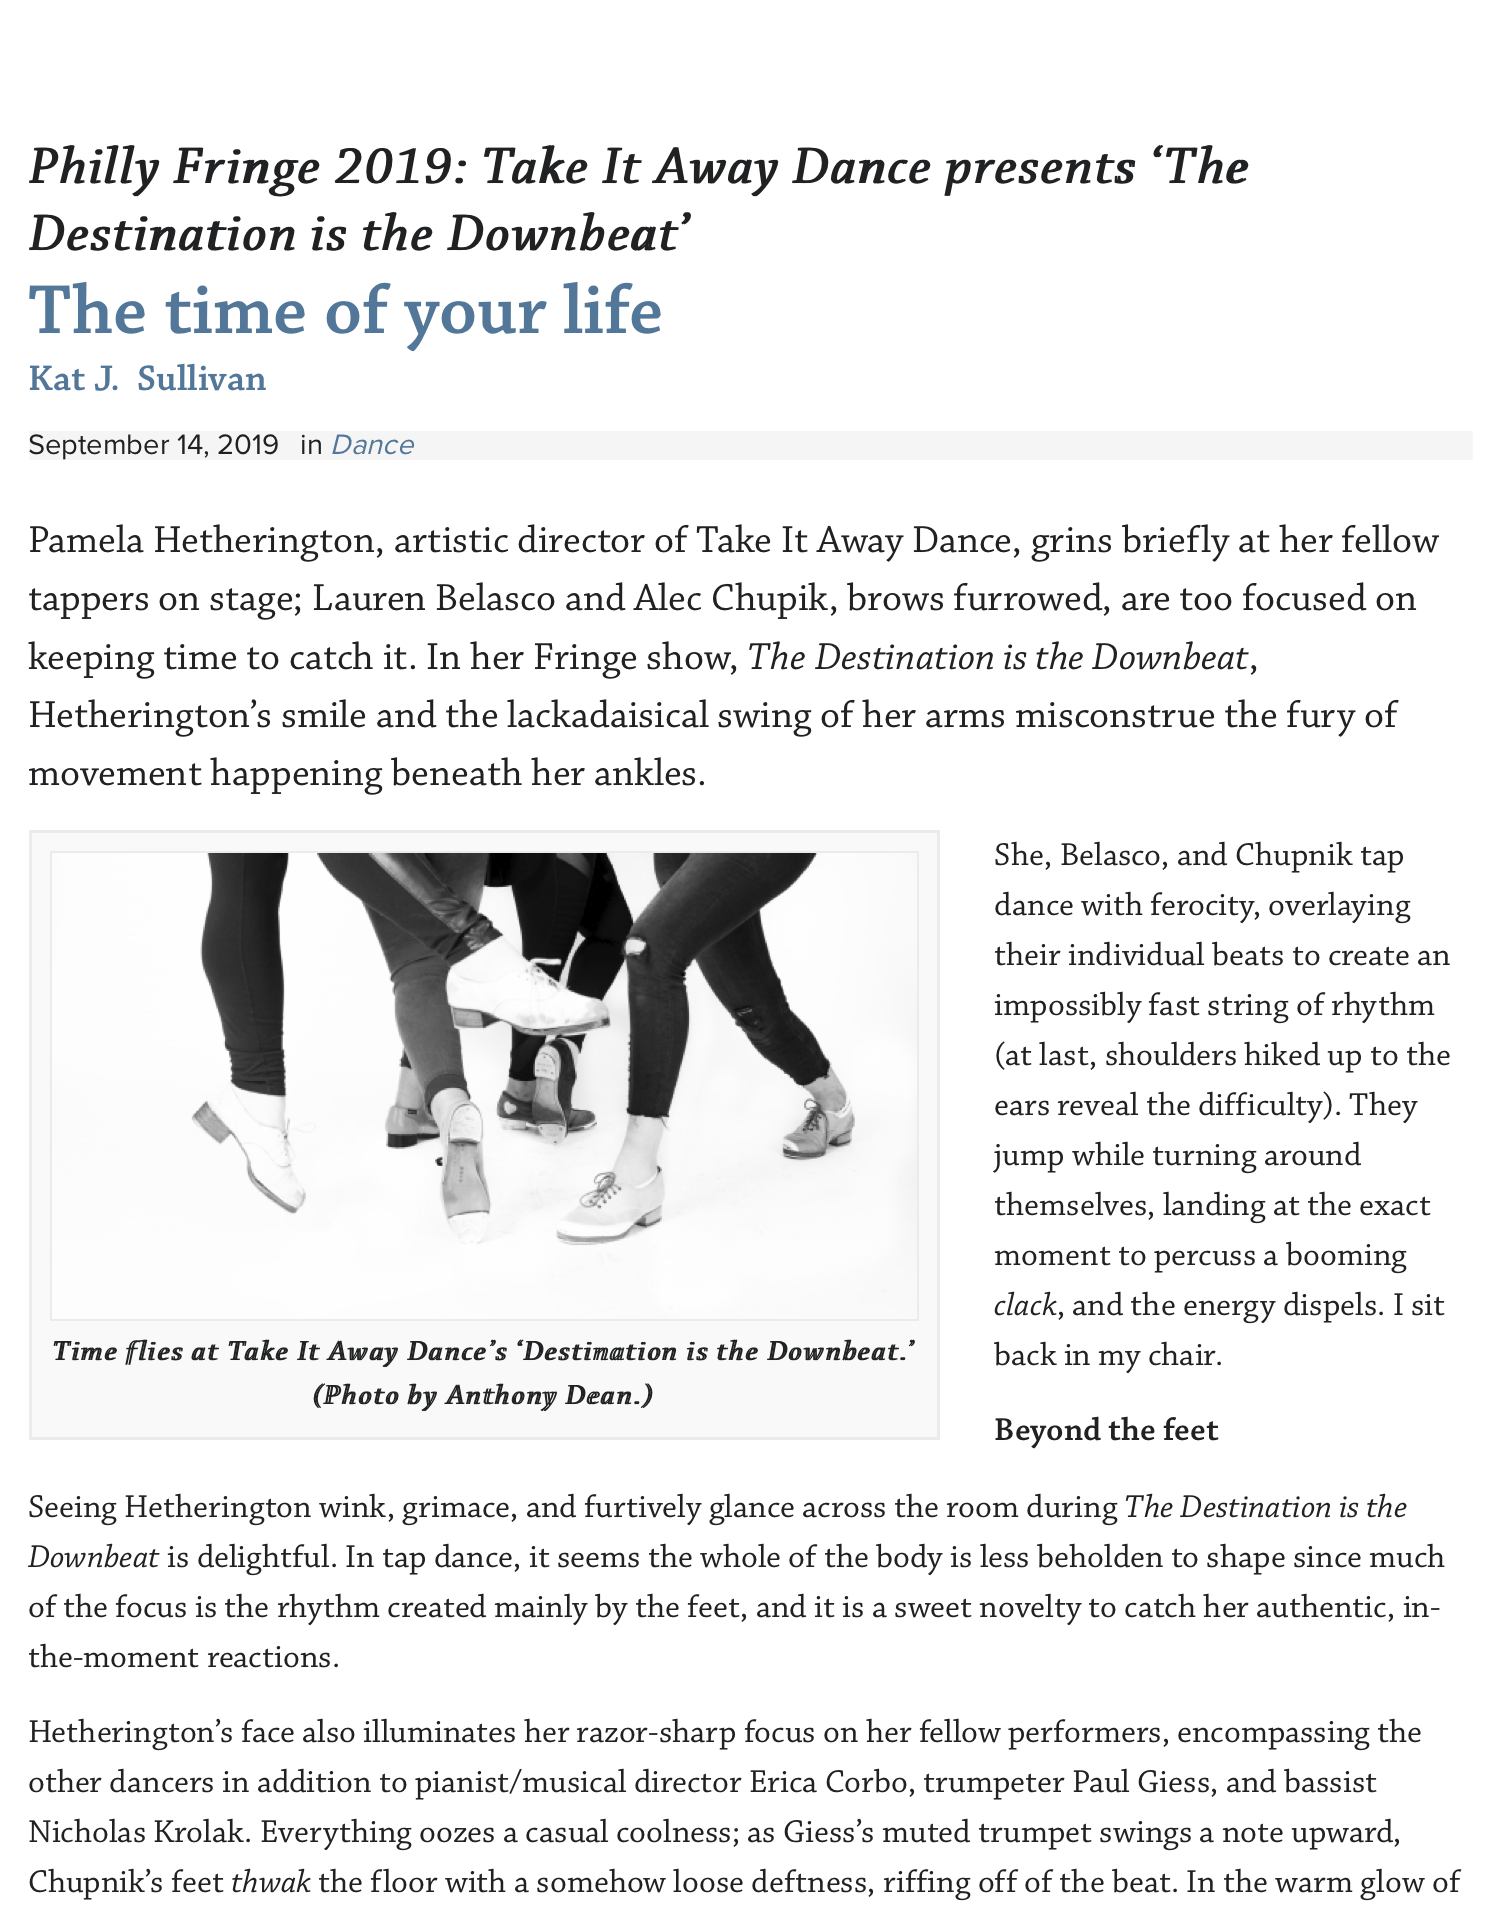 Philly Fringe 2019: Take It Away Dance presents 'The Destination is the Downbeat' | Broad Street Rev.png